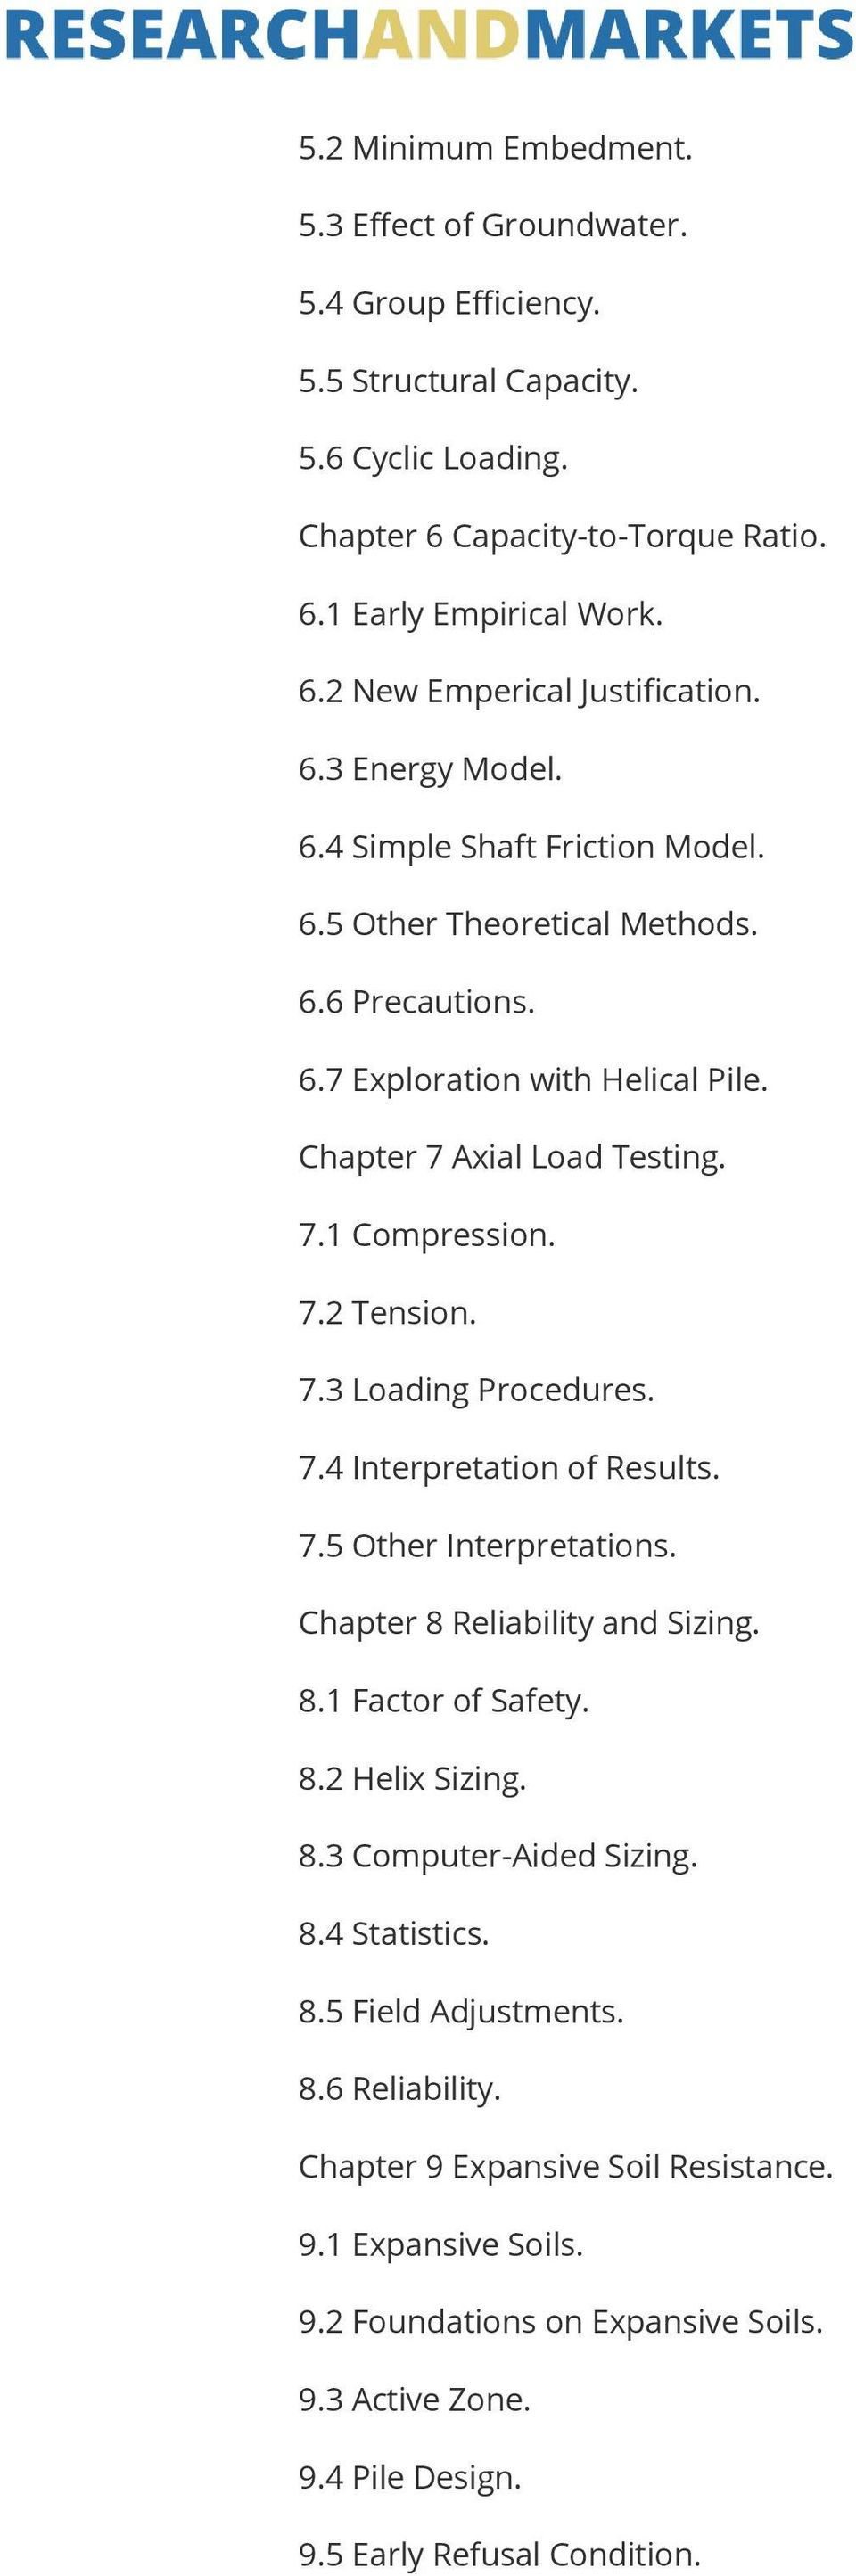 7.4 Interpretation of Results. 7.5 Other Interpretations. Chapter 8 Reliability and Sizing. 8.1 Factor of Safety. 8.2 Helix Sizing. 8.3 Computer-Aided Sizing. 8.4 Statistics. 8.5 Field Adjustments. 8.6 Reliability.